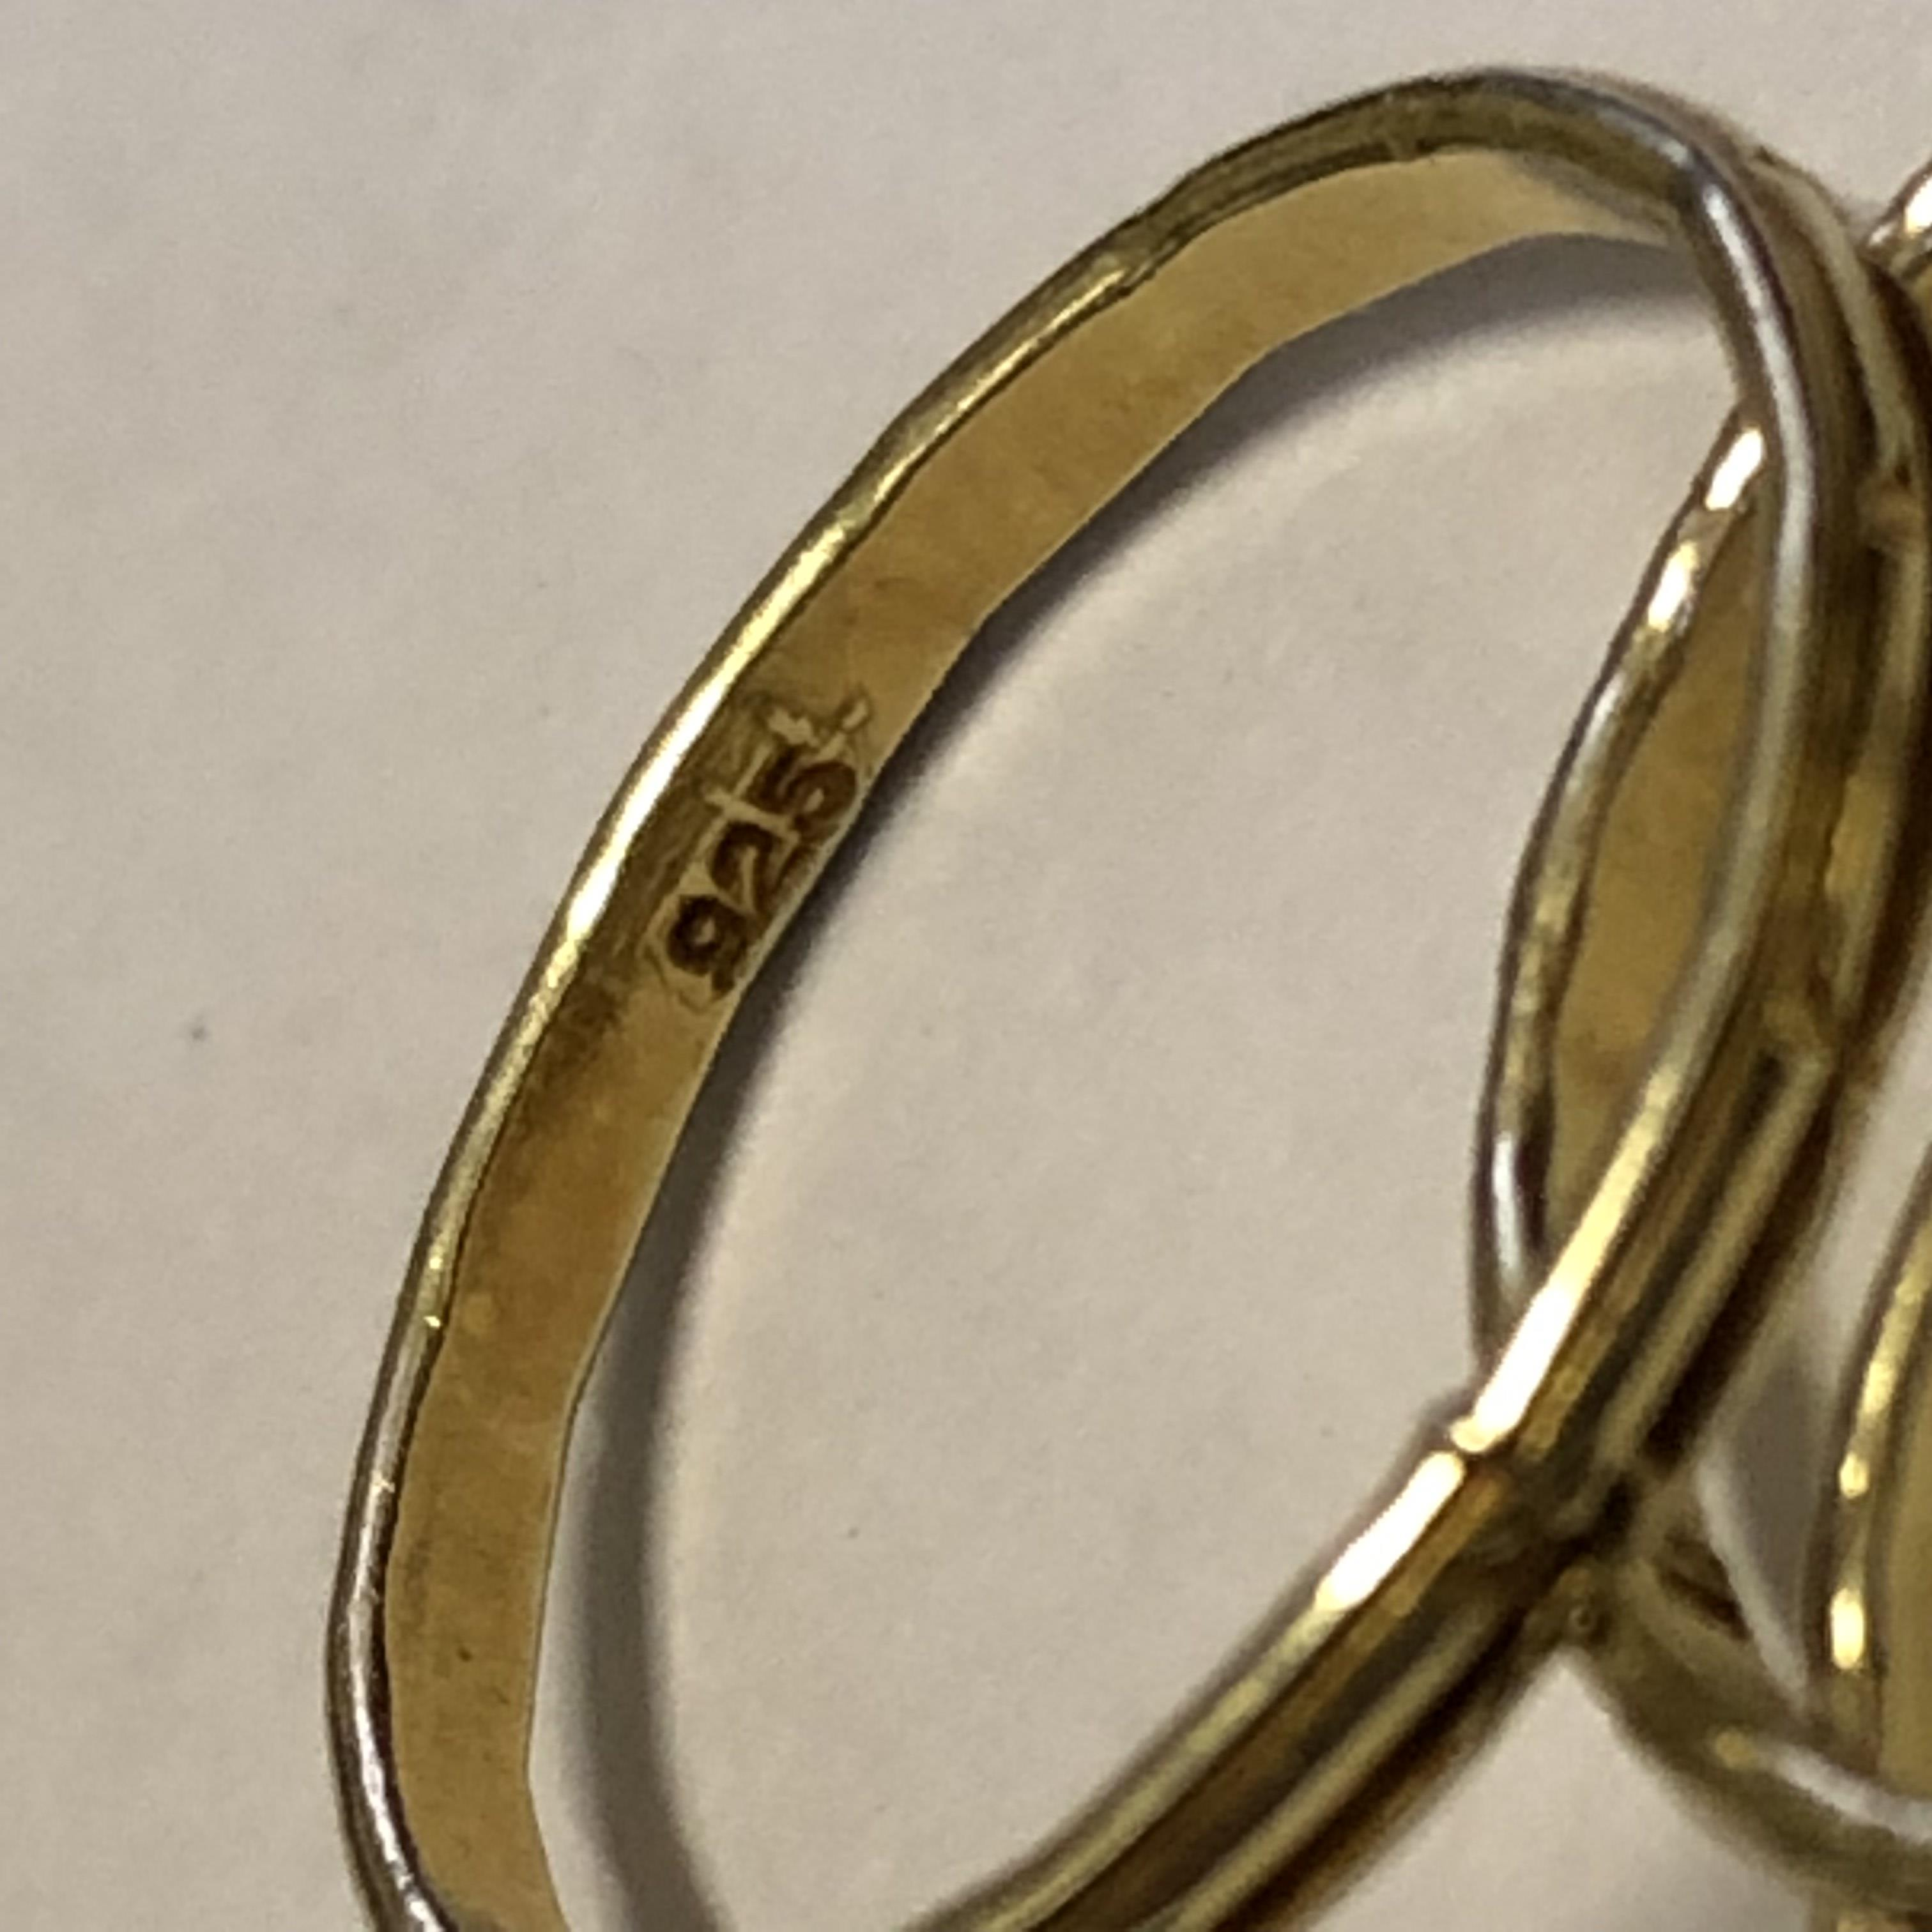 Lot 217 - FIVE 925 STAMPED GOLD PLATED BANDS VARIOUS SIZES 4.